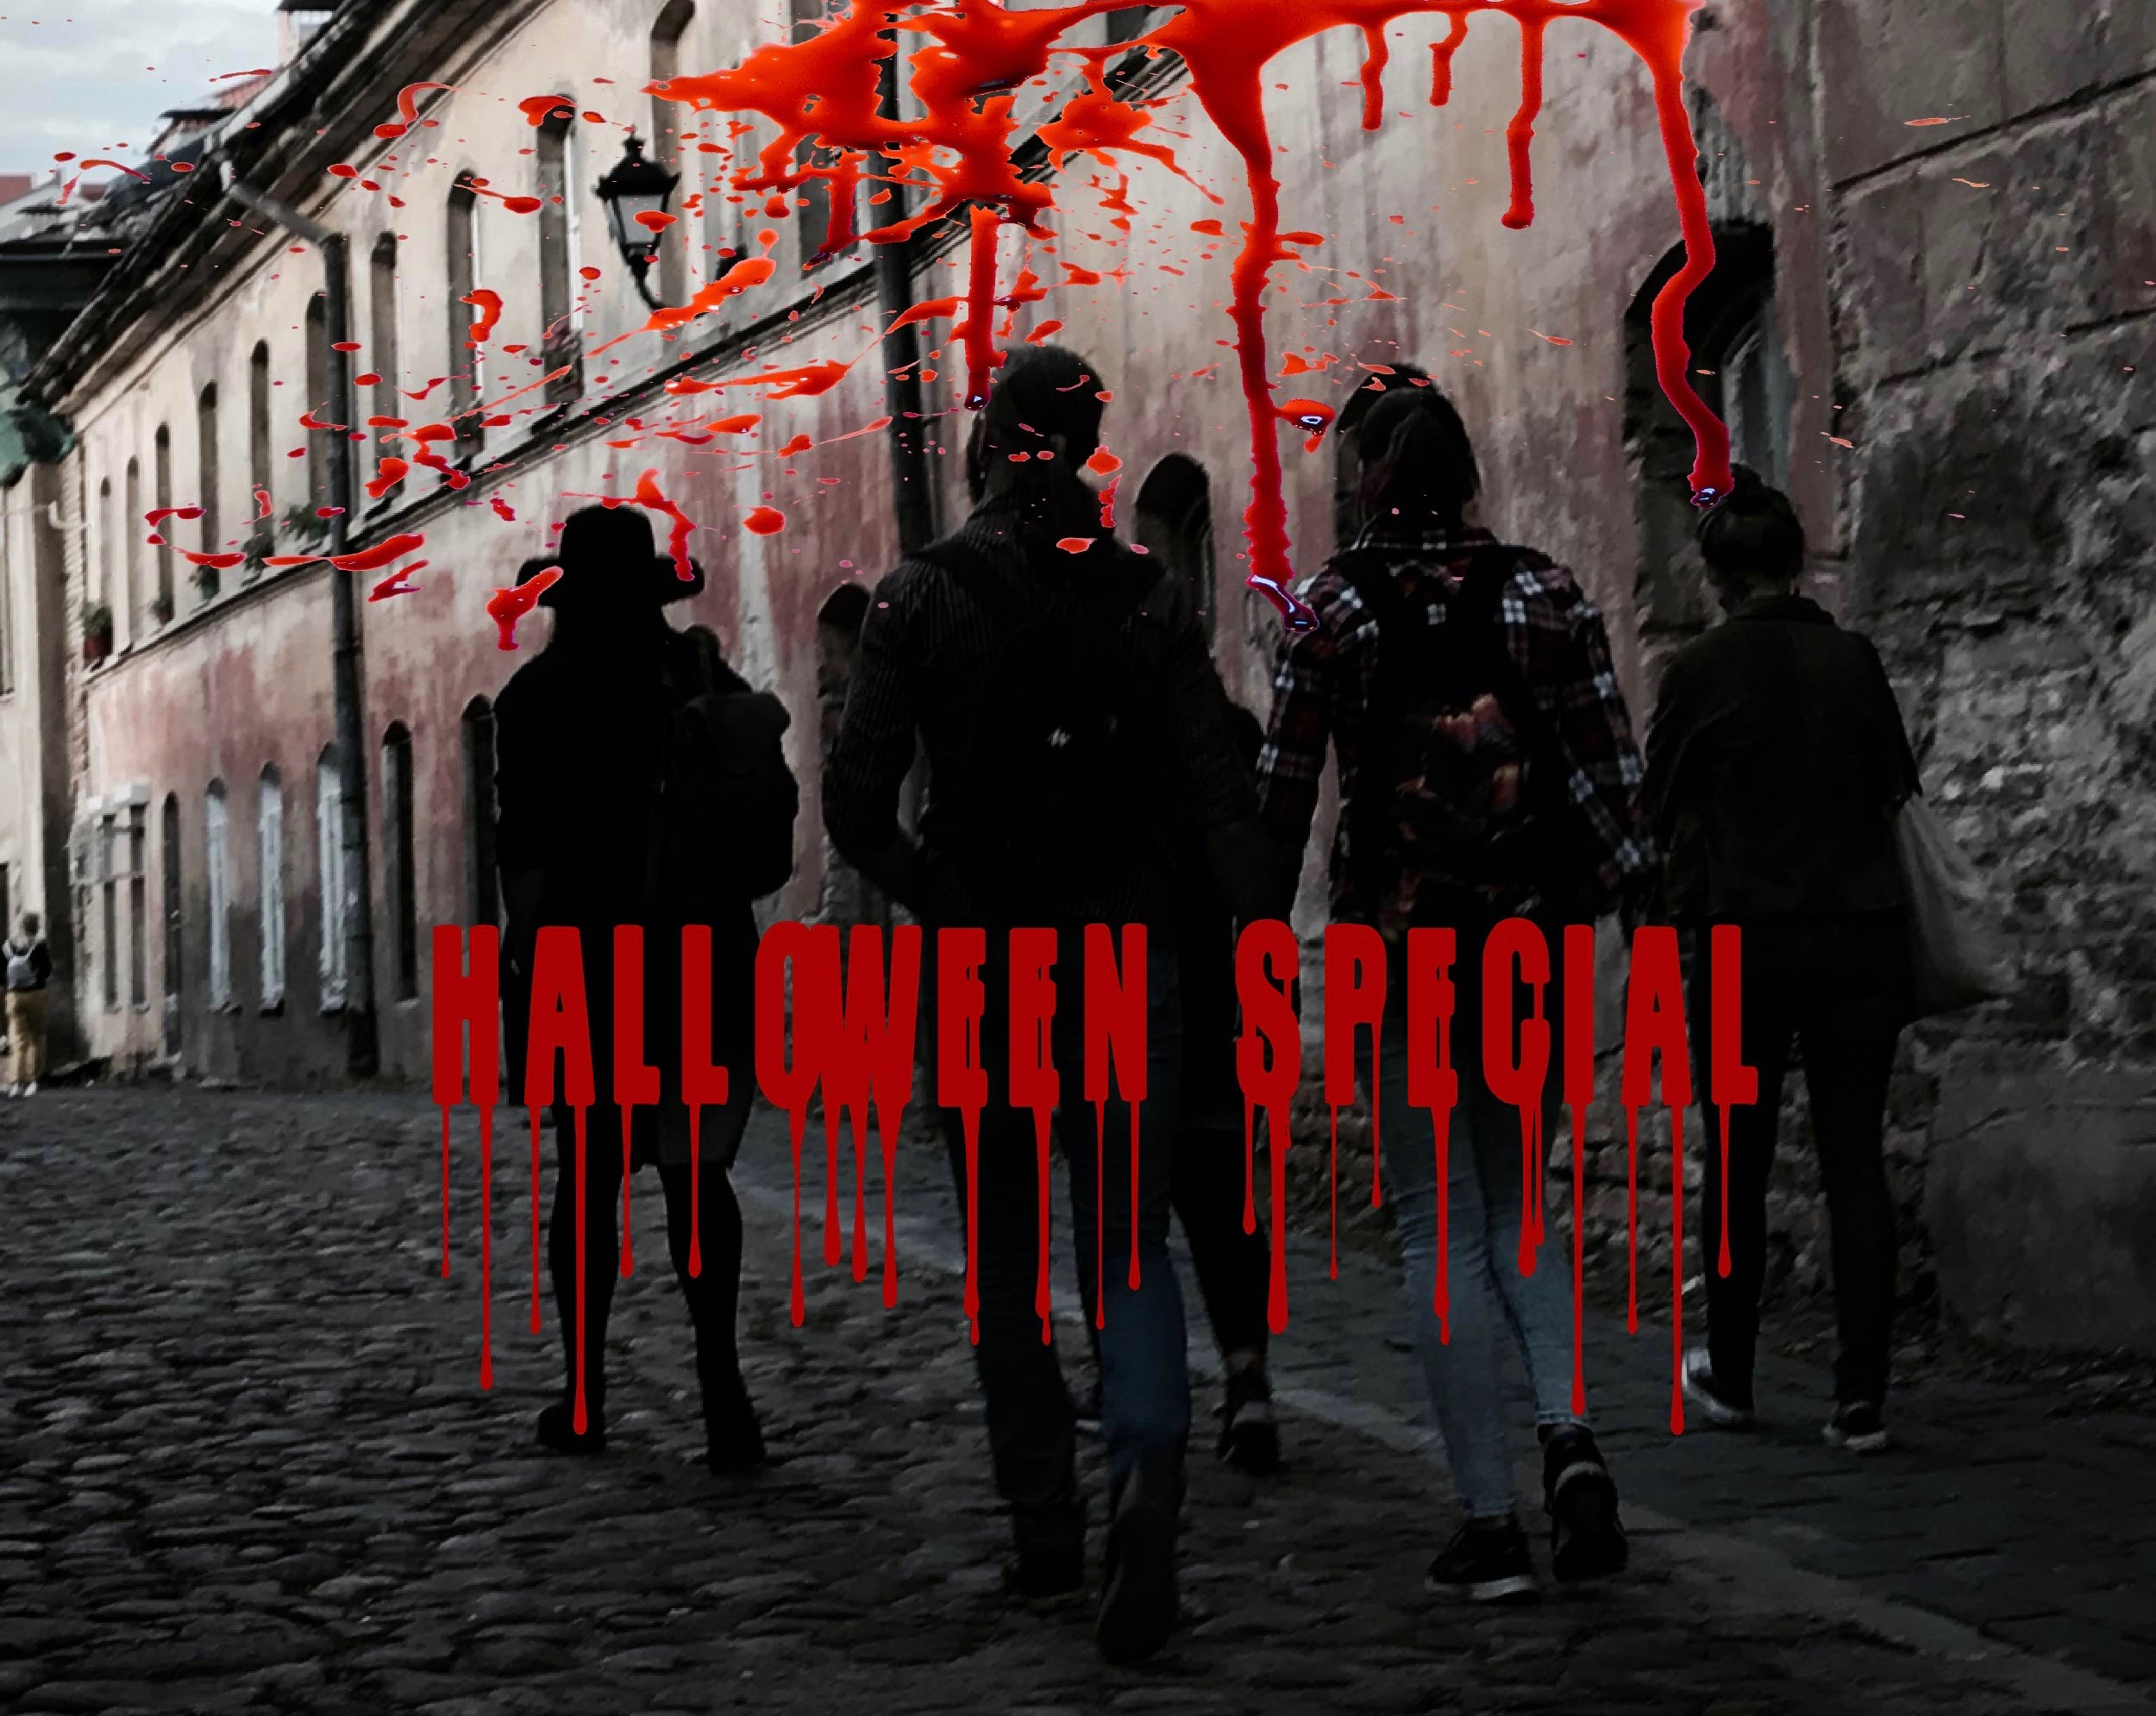 A Halloween special ghost tour in Vilnius